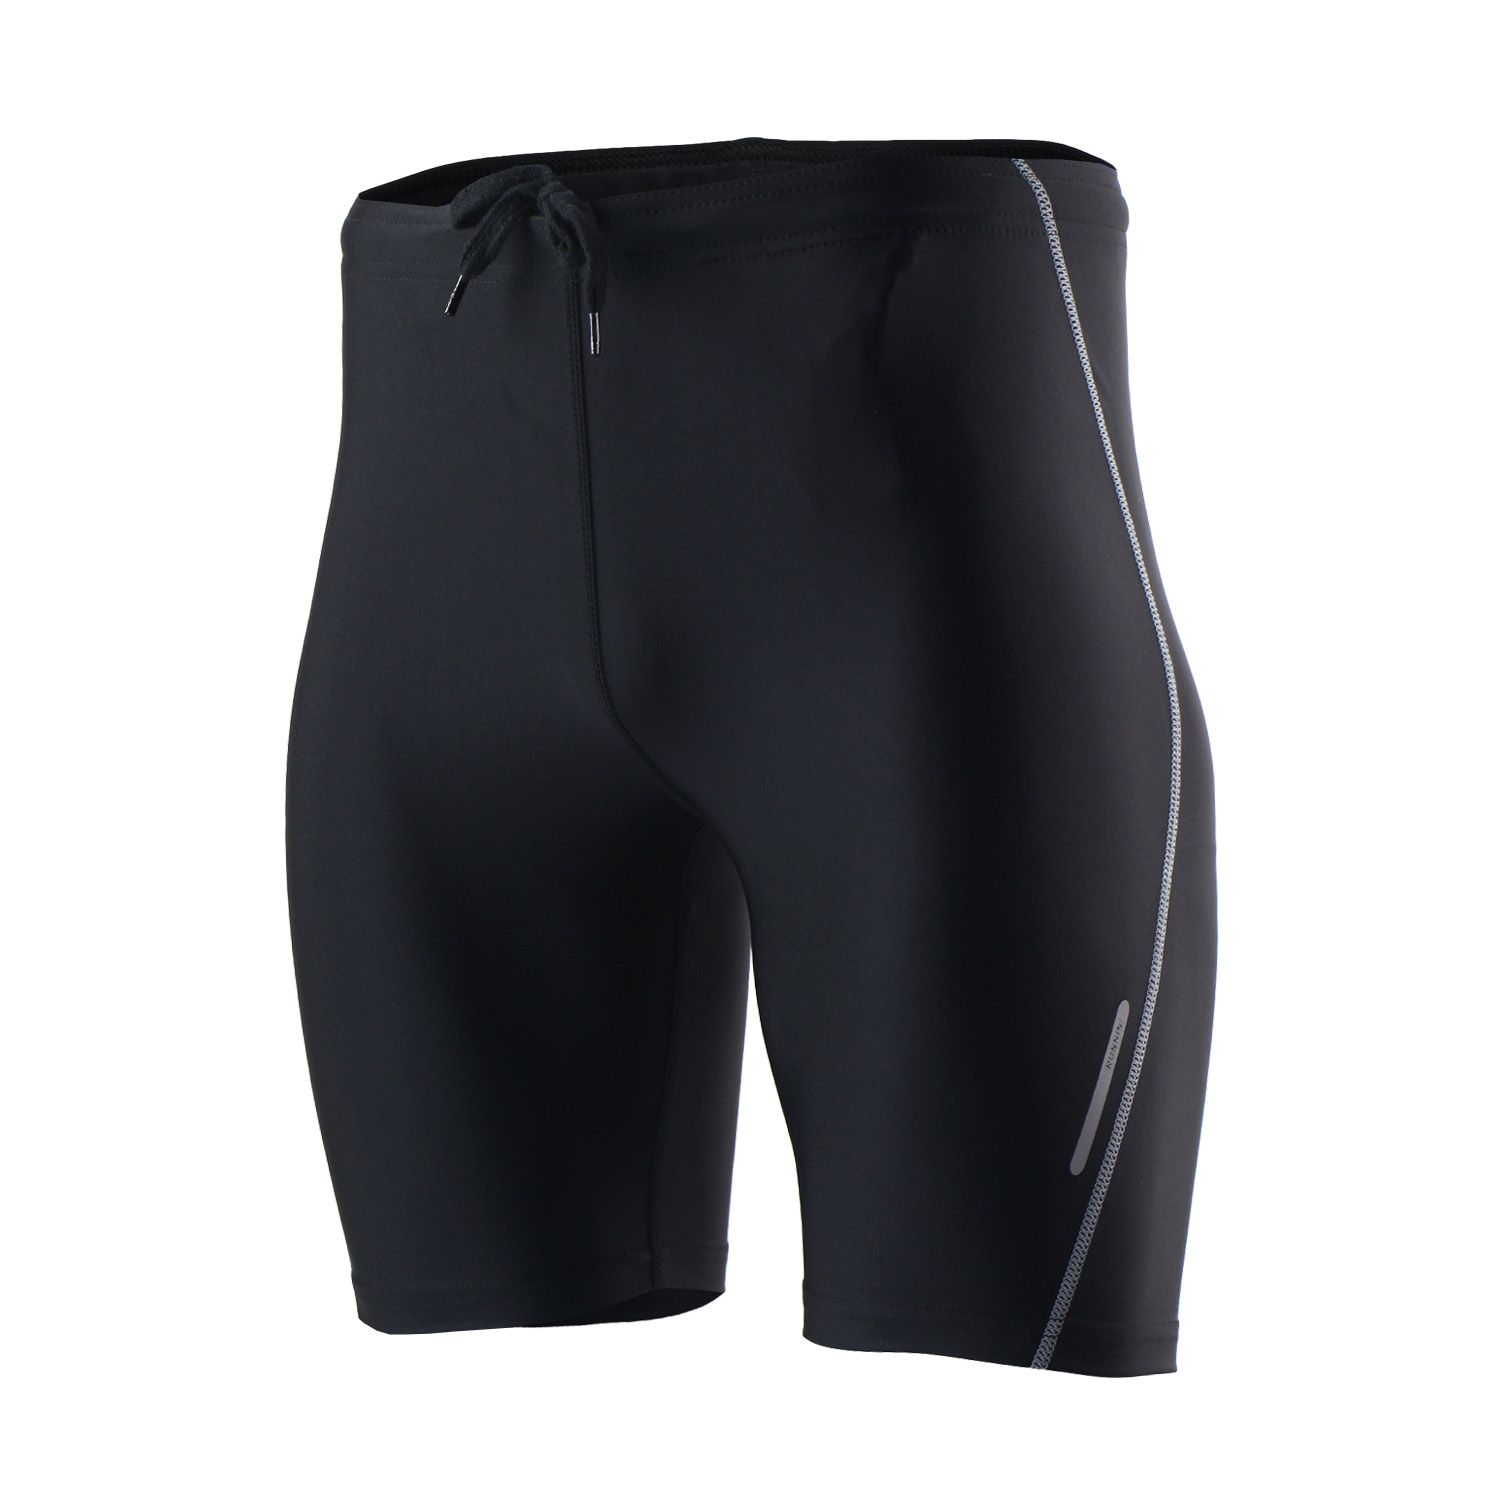 ARSUXEO Summer Short Running Tights with Waist Rope and Pocket Lycra Men Sport Leggings Compression Sports Shorts Man Women